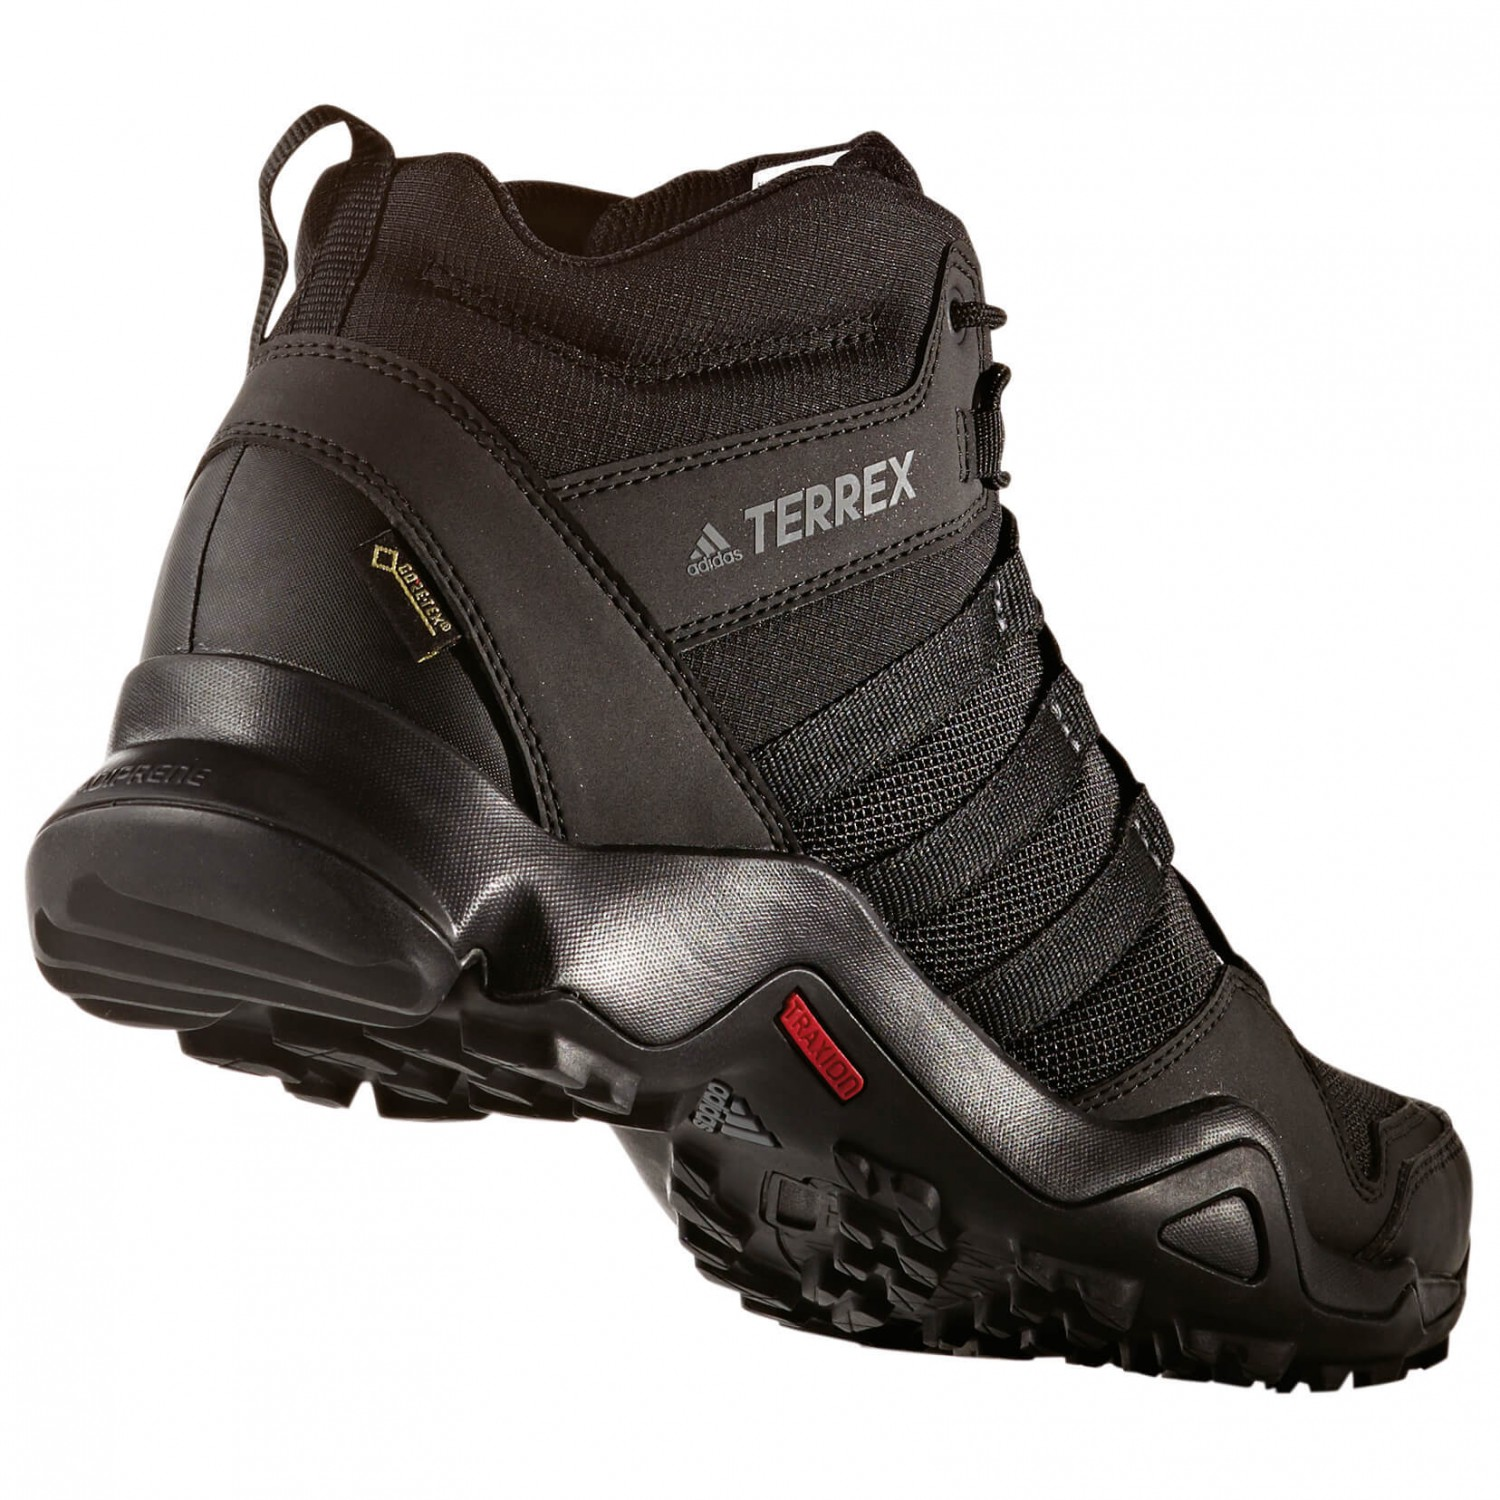 size 40 d283a 9cb4e Adidas Terrex AX2R Mid GTX - Walking Boots Men s   Buy online    Alpinetrek.co.uk